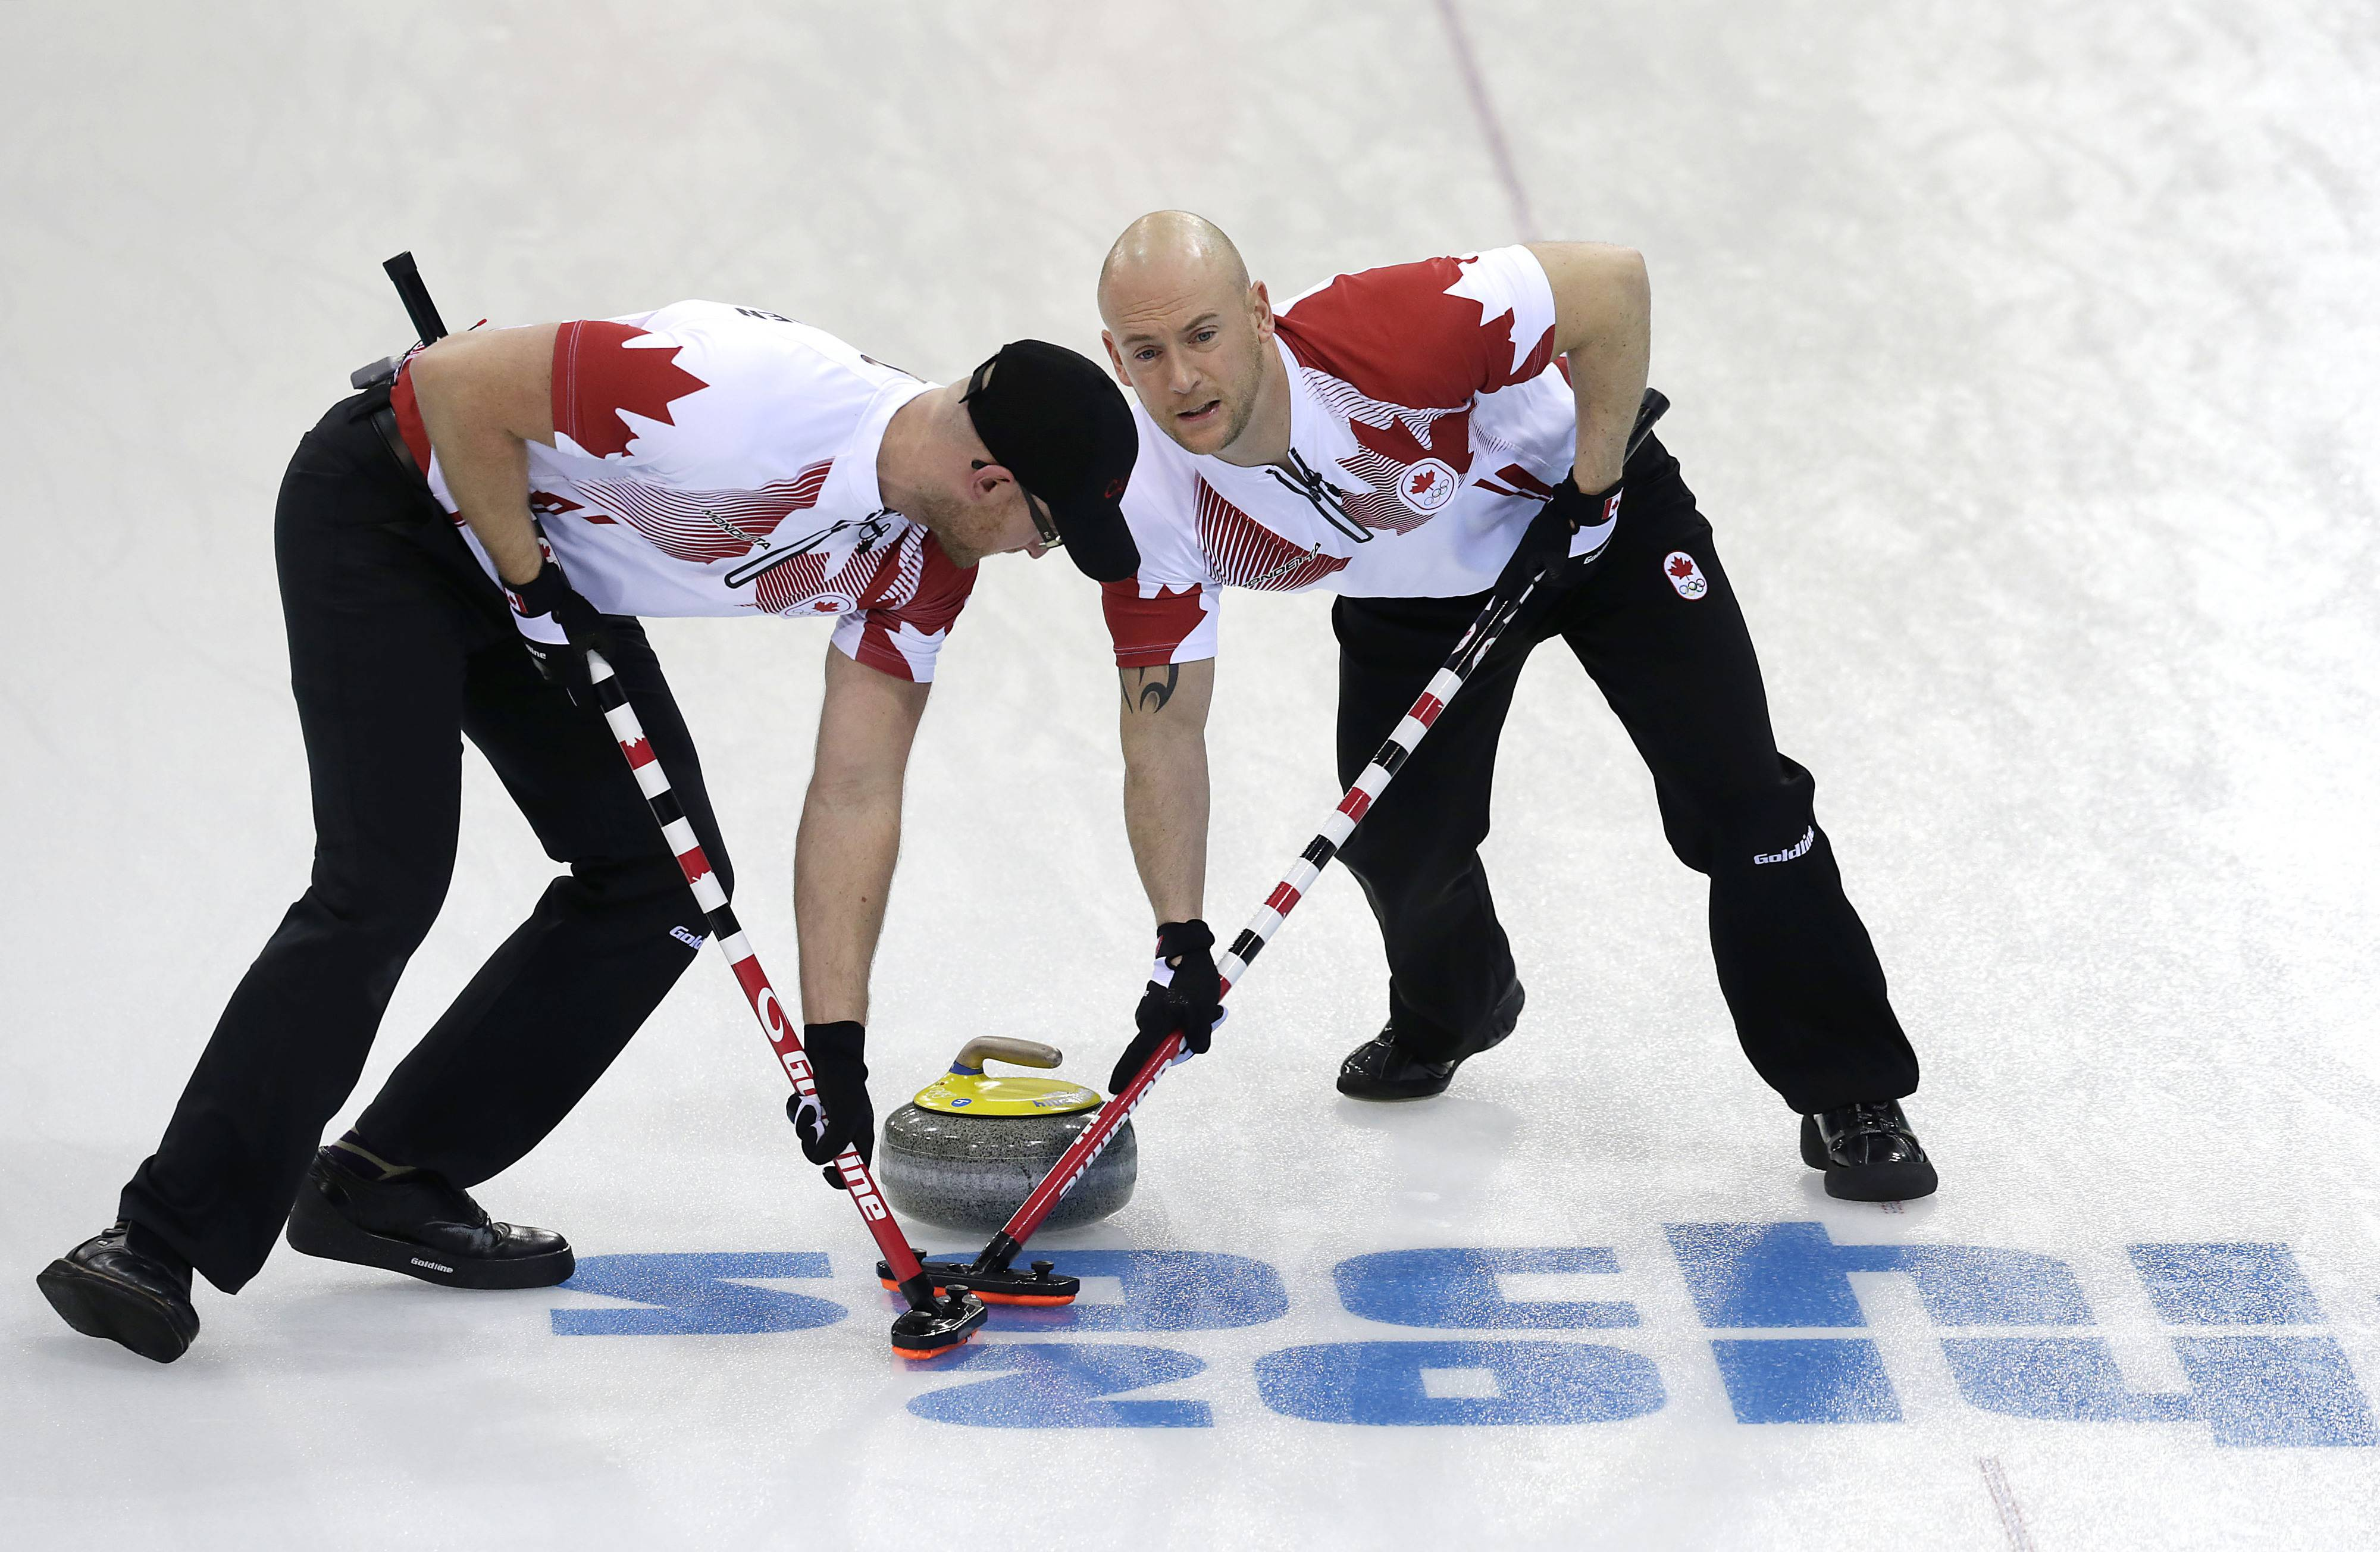 Canada's Ryan Fry, right, and Ryan Harnden, left, sweep the ice during the men's curling competition against Germany.